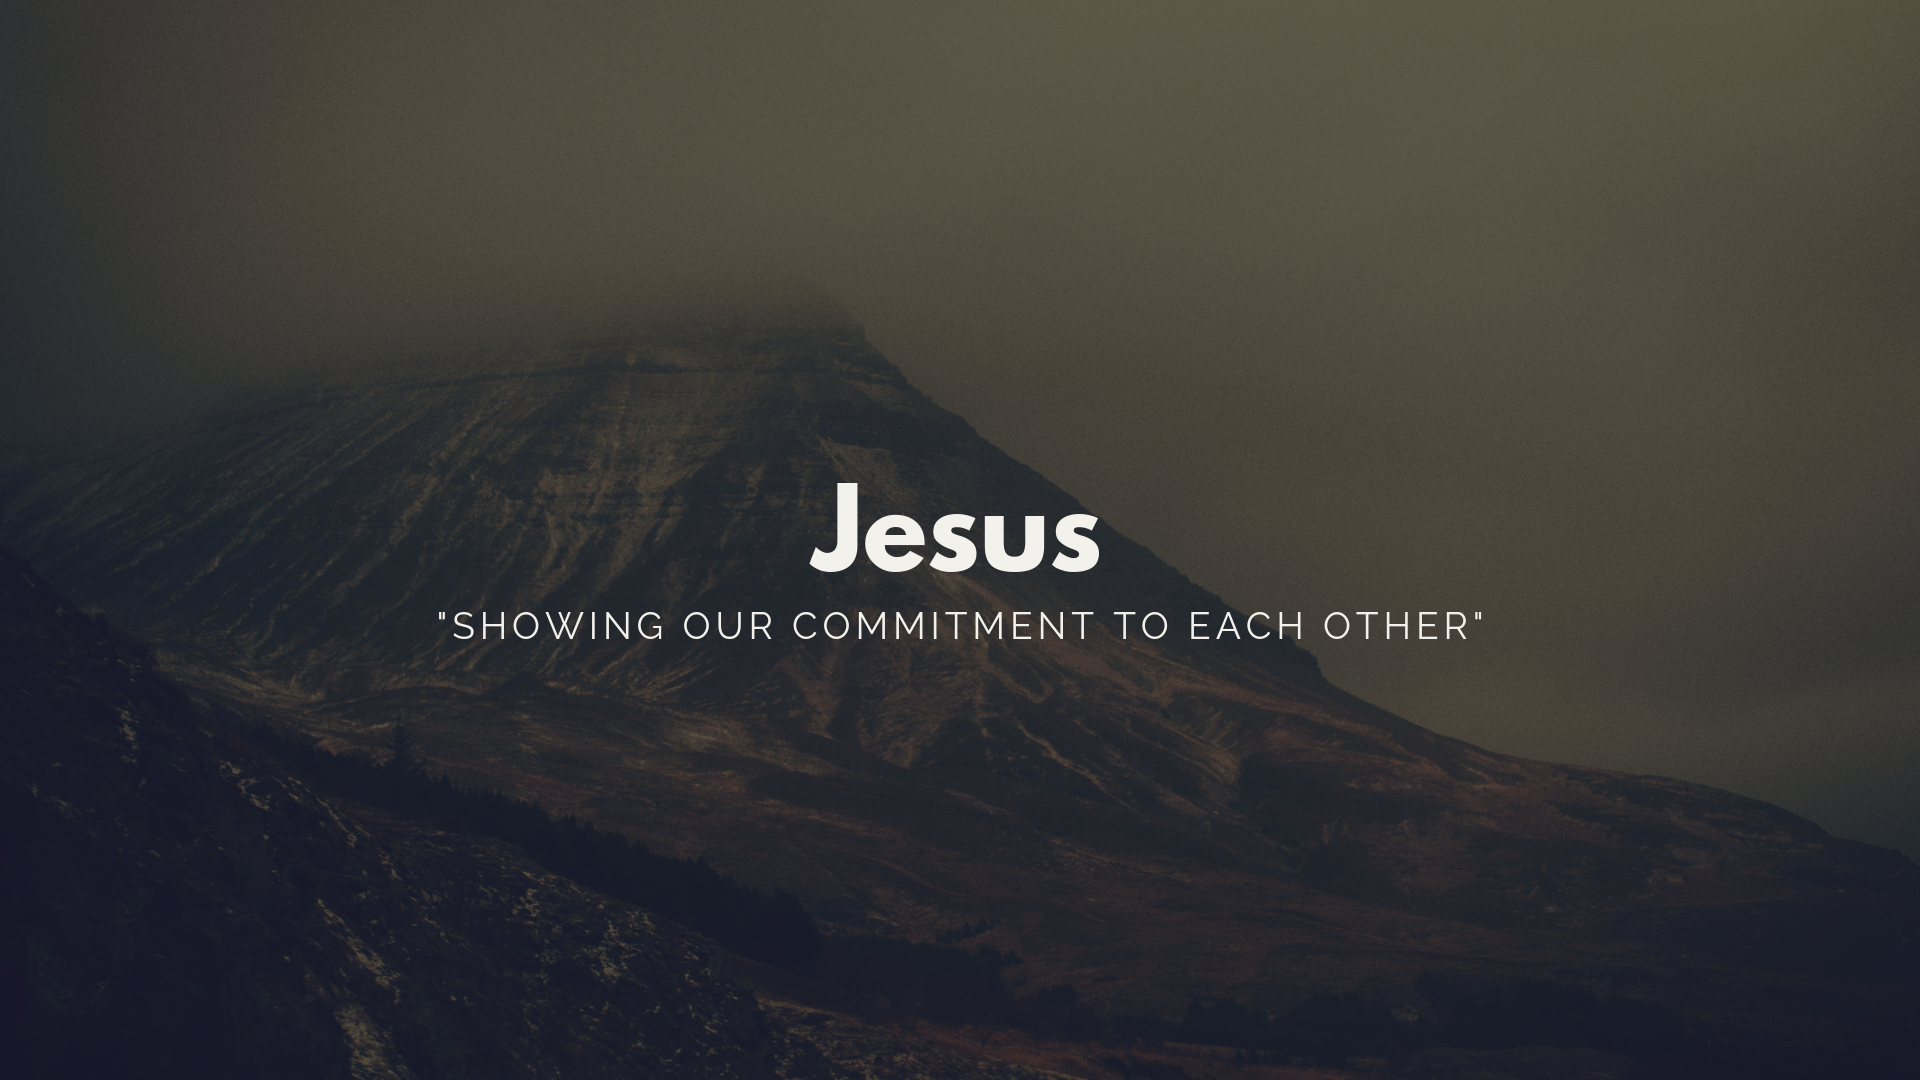 JESUS(Showing Our Commitment to Each Other)